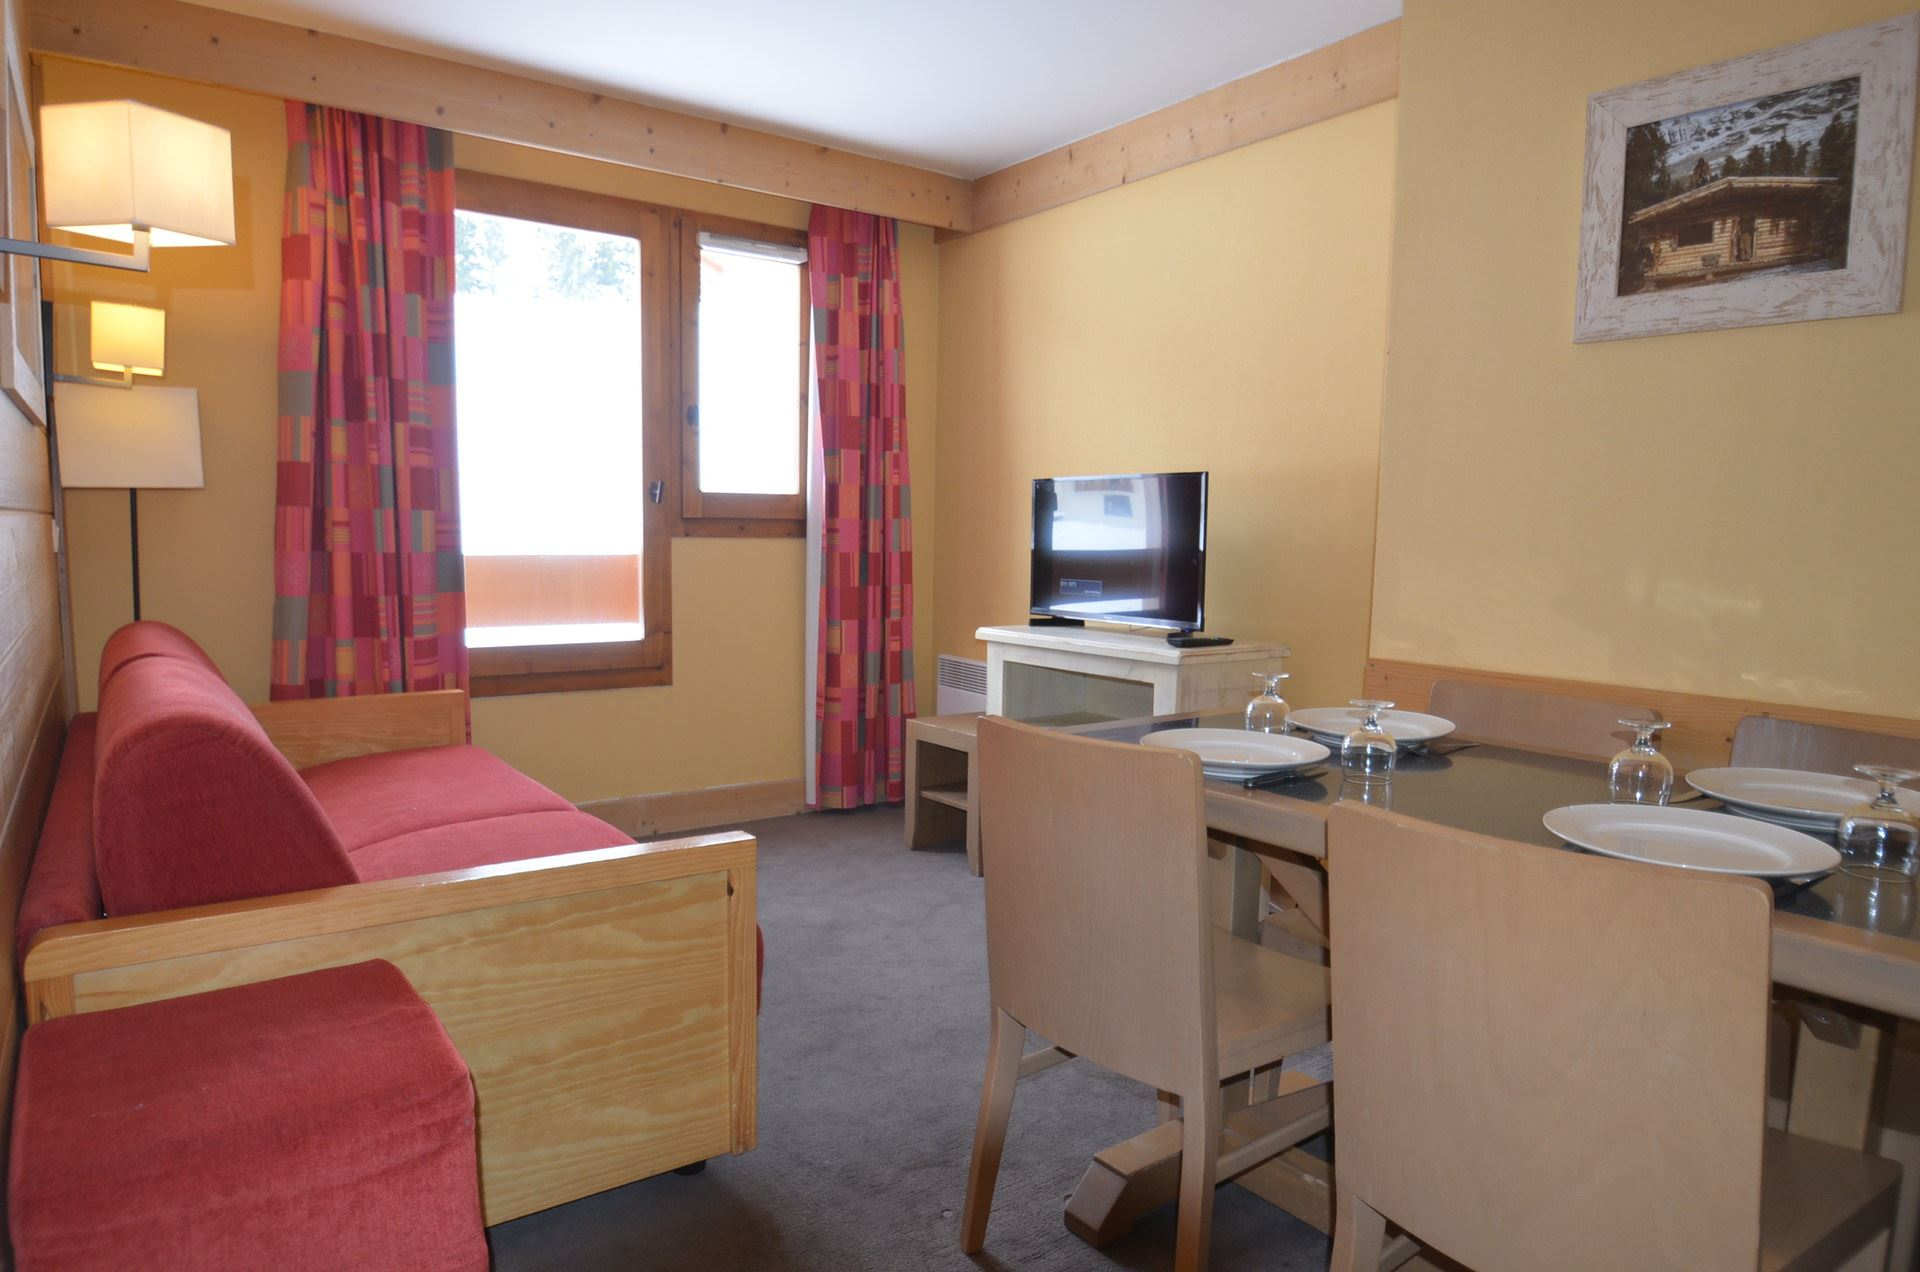 2 Room 4 Pers ski-in ski-out / Aconit 202